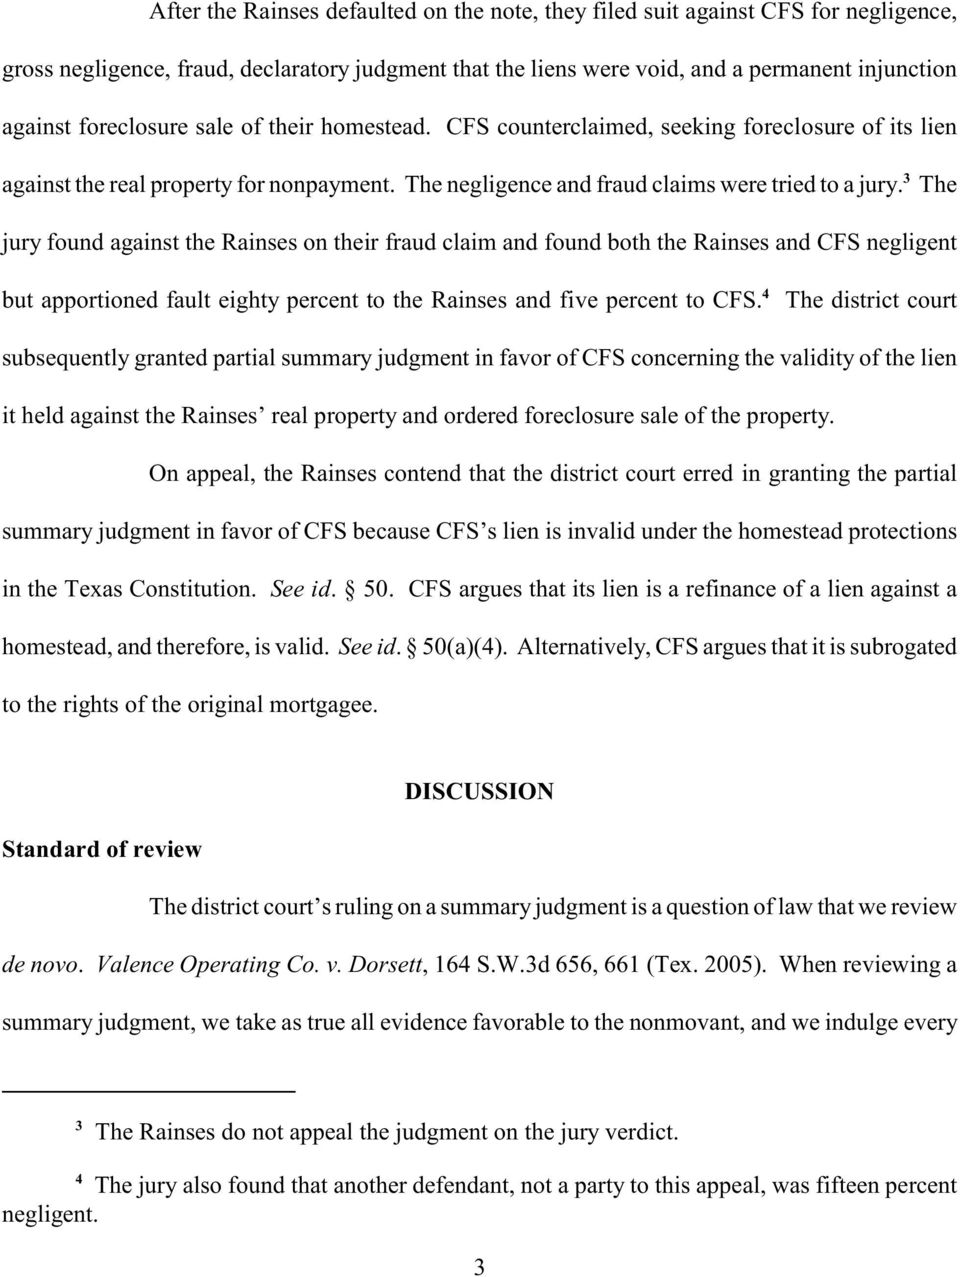 The jury found against the Rainses on their fraud claim and found both the Rainses and CFS negligent 4 but apportioned fault eighty percent to the Rainses and five percent to CFS.